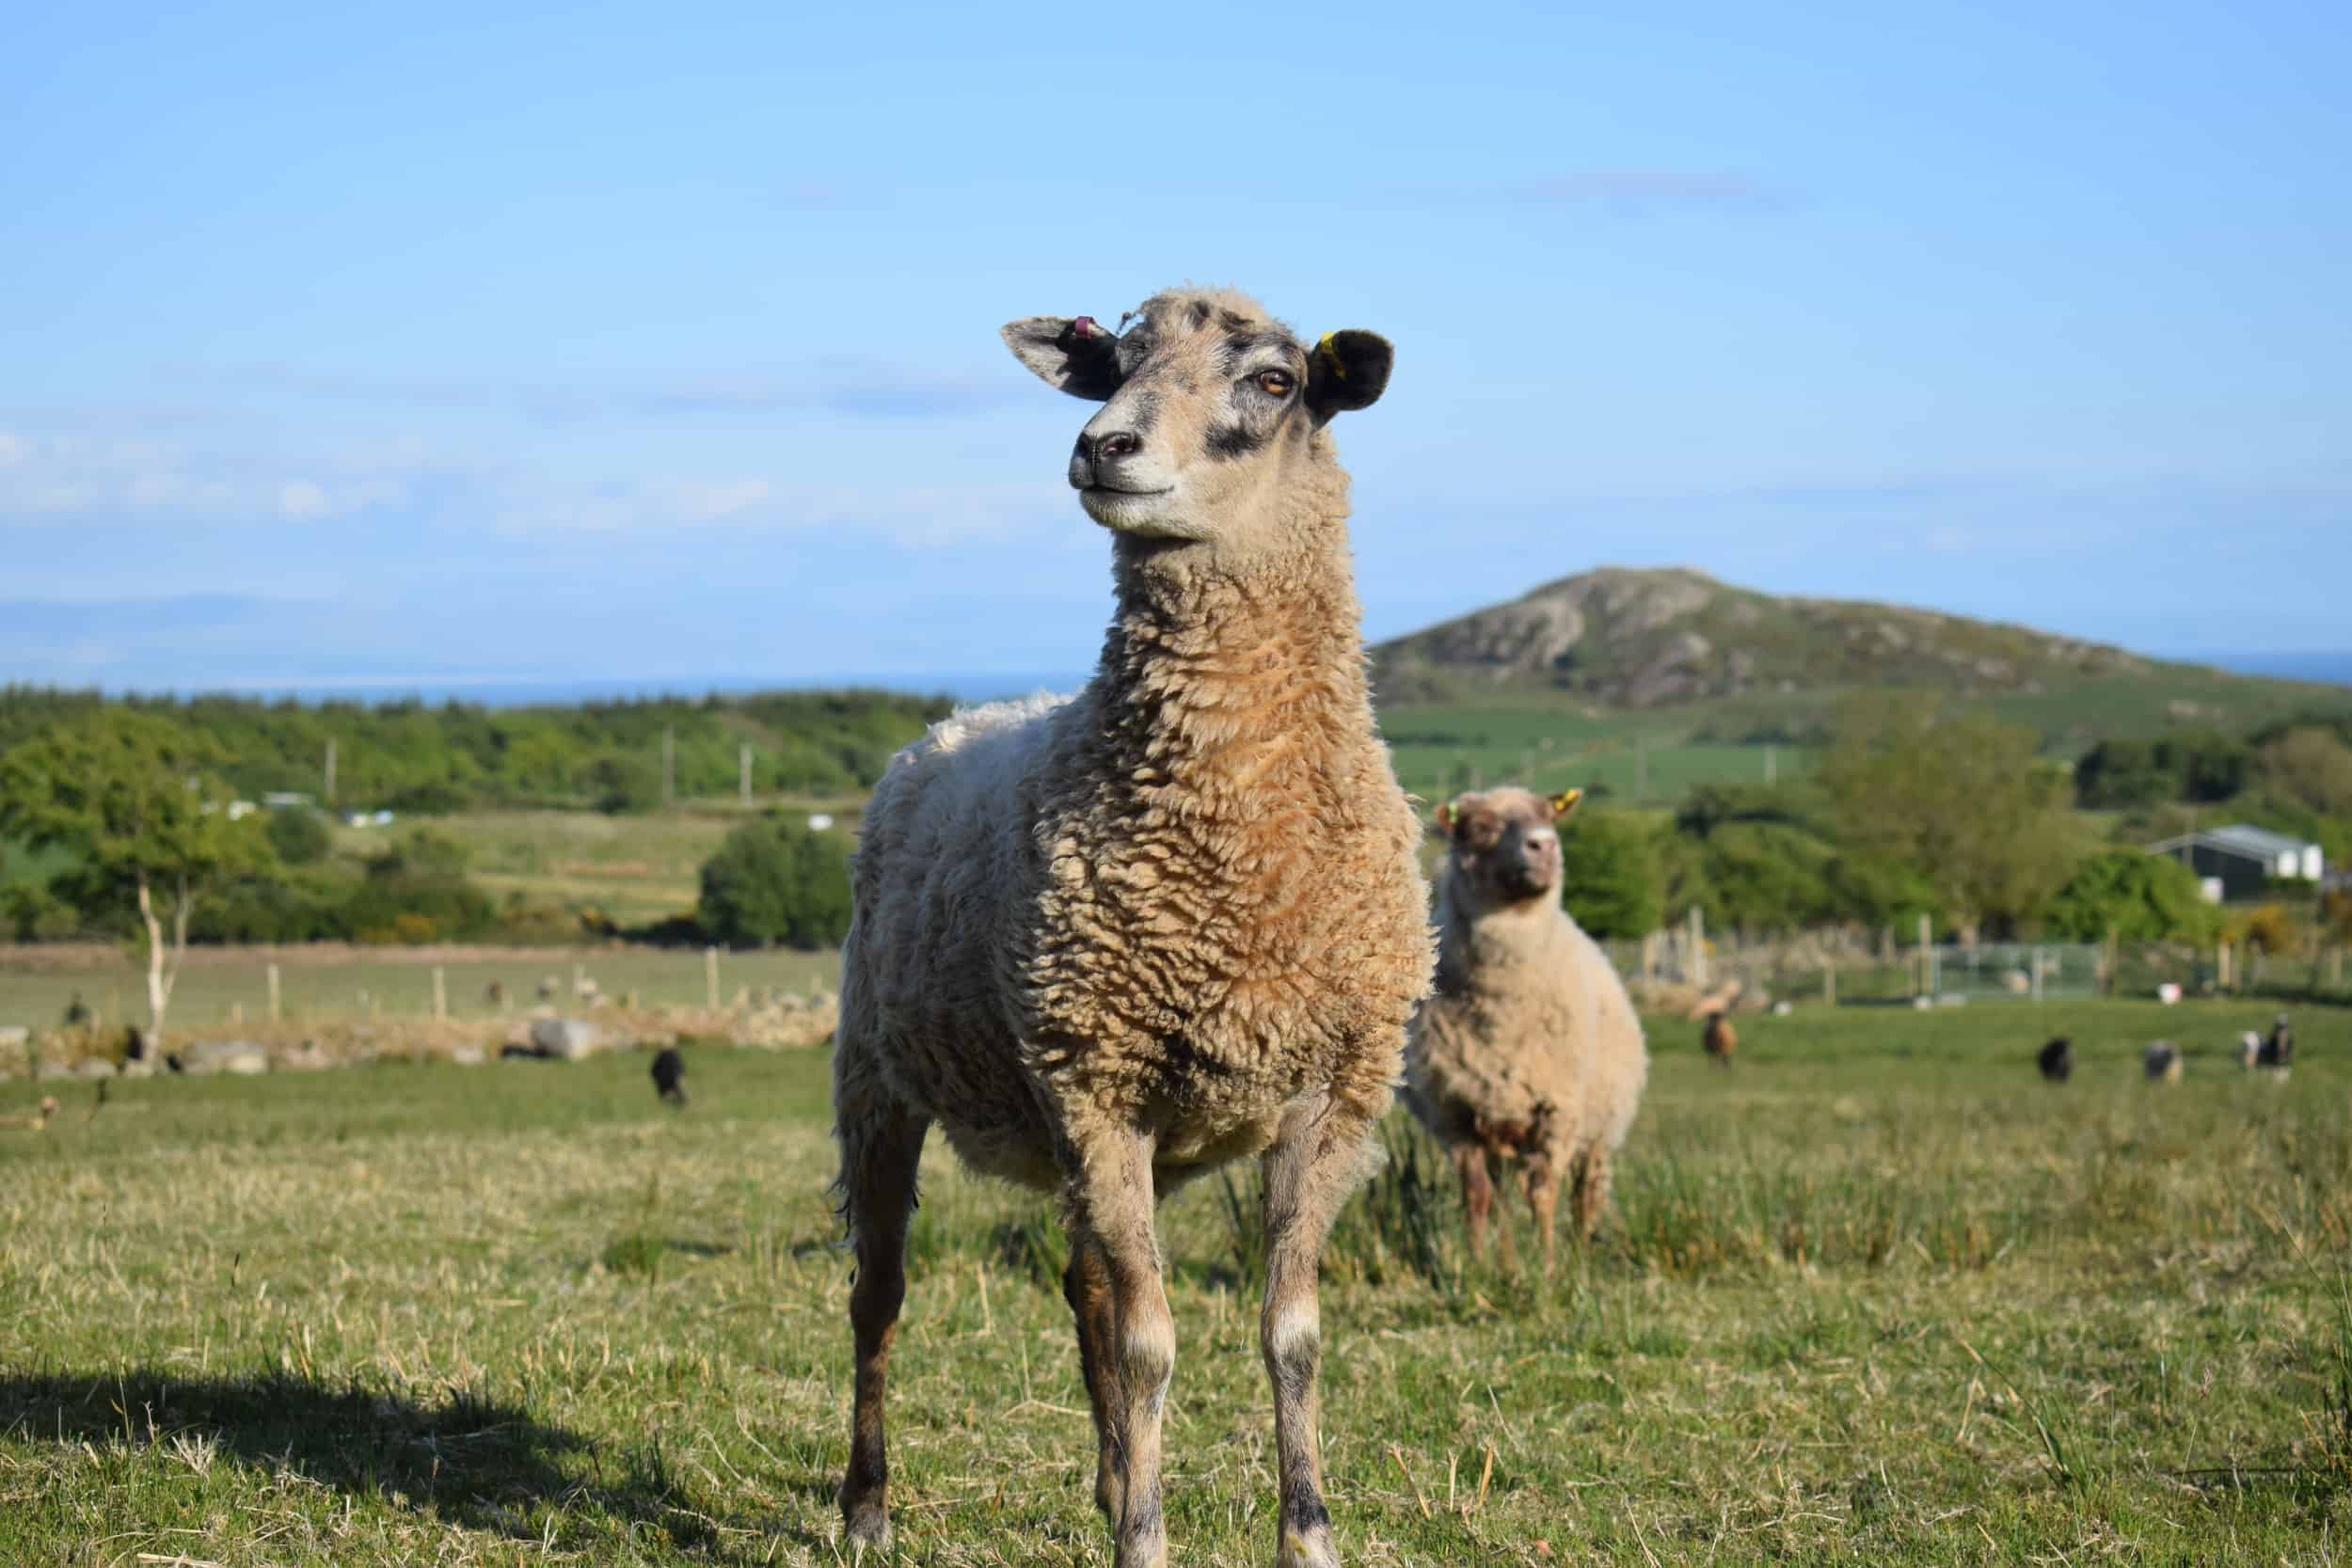 jemima crossbreed sheep beautiful ewe coloured leicester longwool cross gotland shetland sheep 2